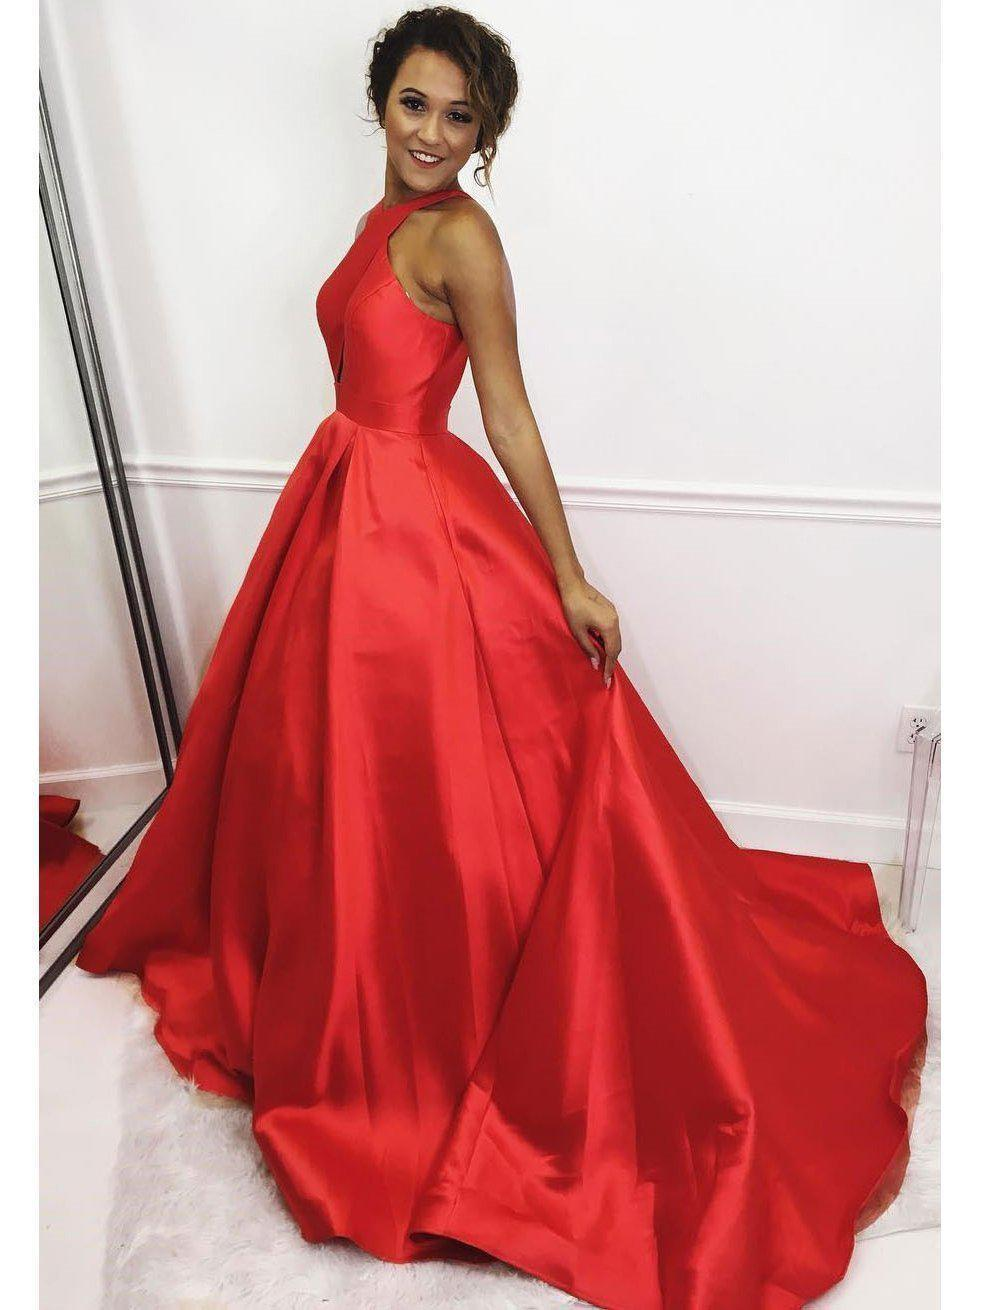 Red Simple Prom Evening Dress Plus Size Long A Line | DRESS